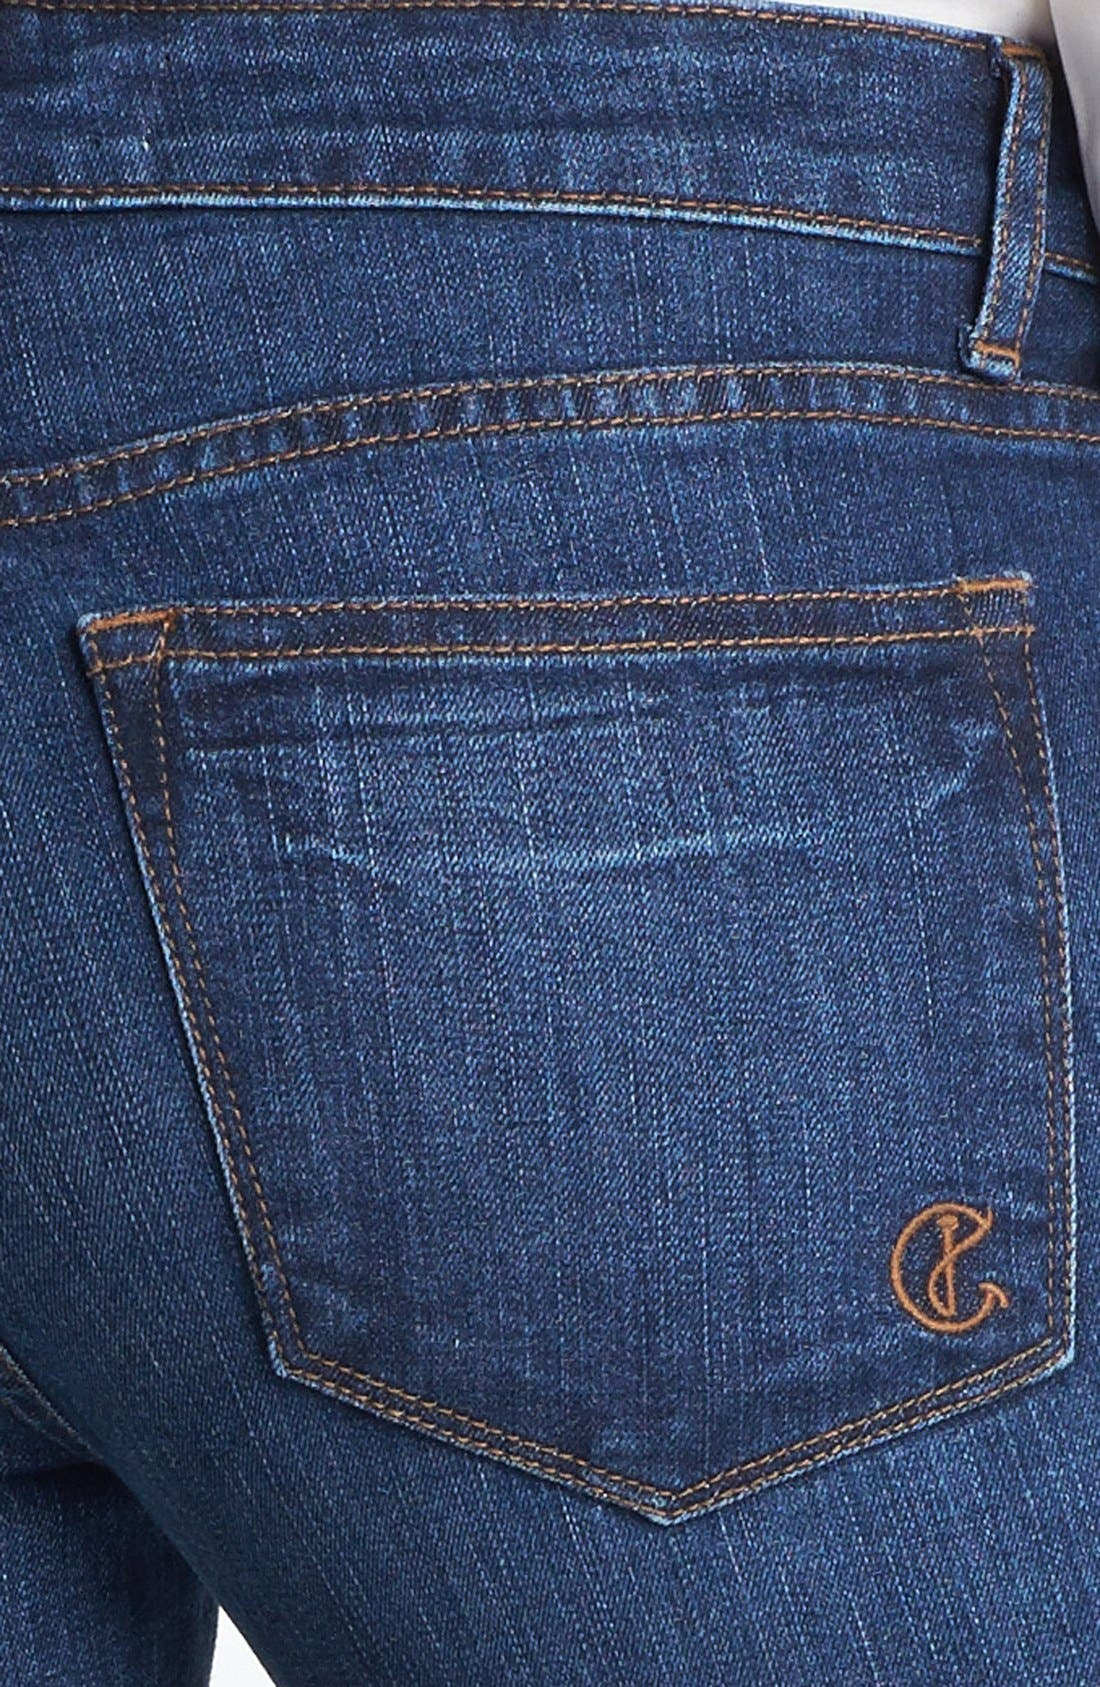 Alternate Image 3  - CJ by Cookie Johnson 'Believe' Embellished Crop Stretch Jeans